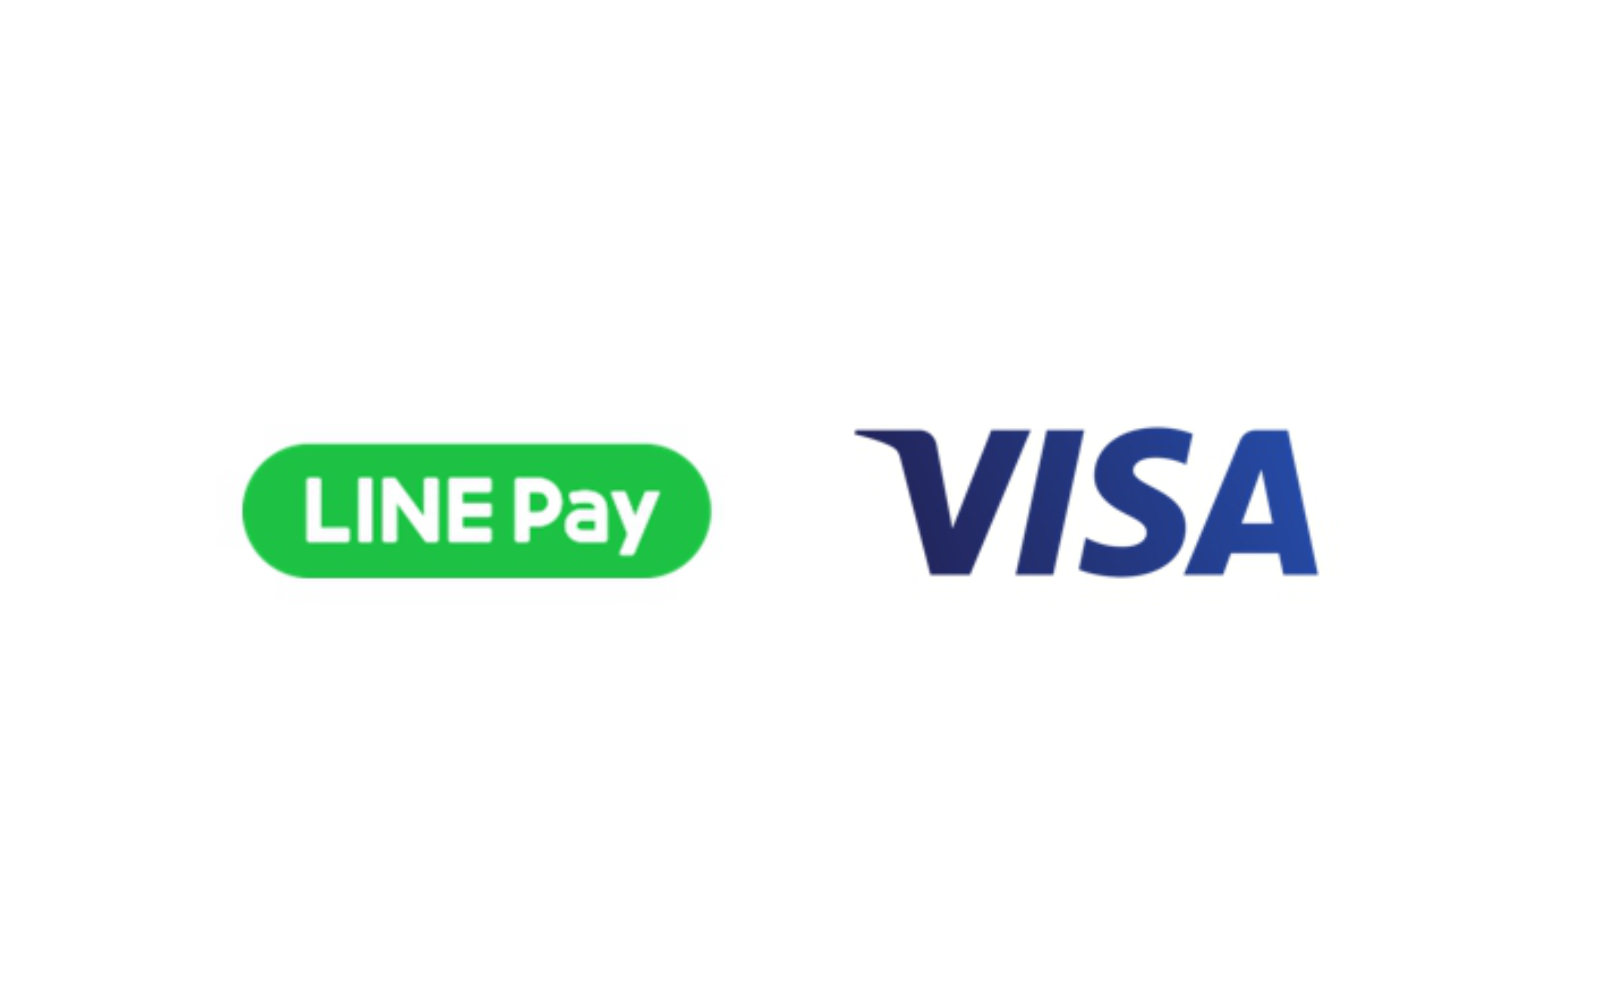 LINE Pay and VISA